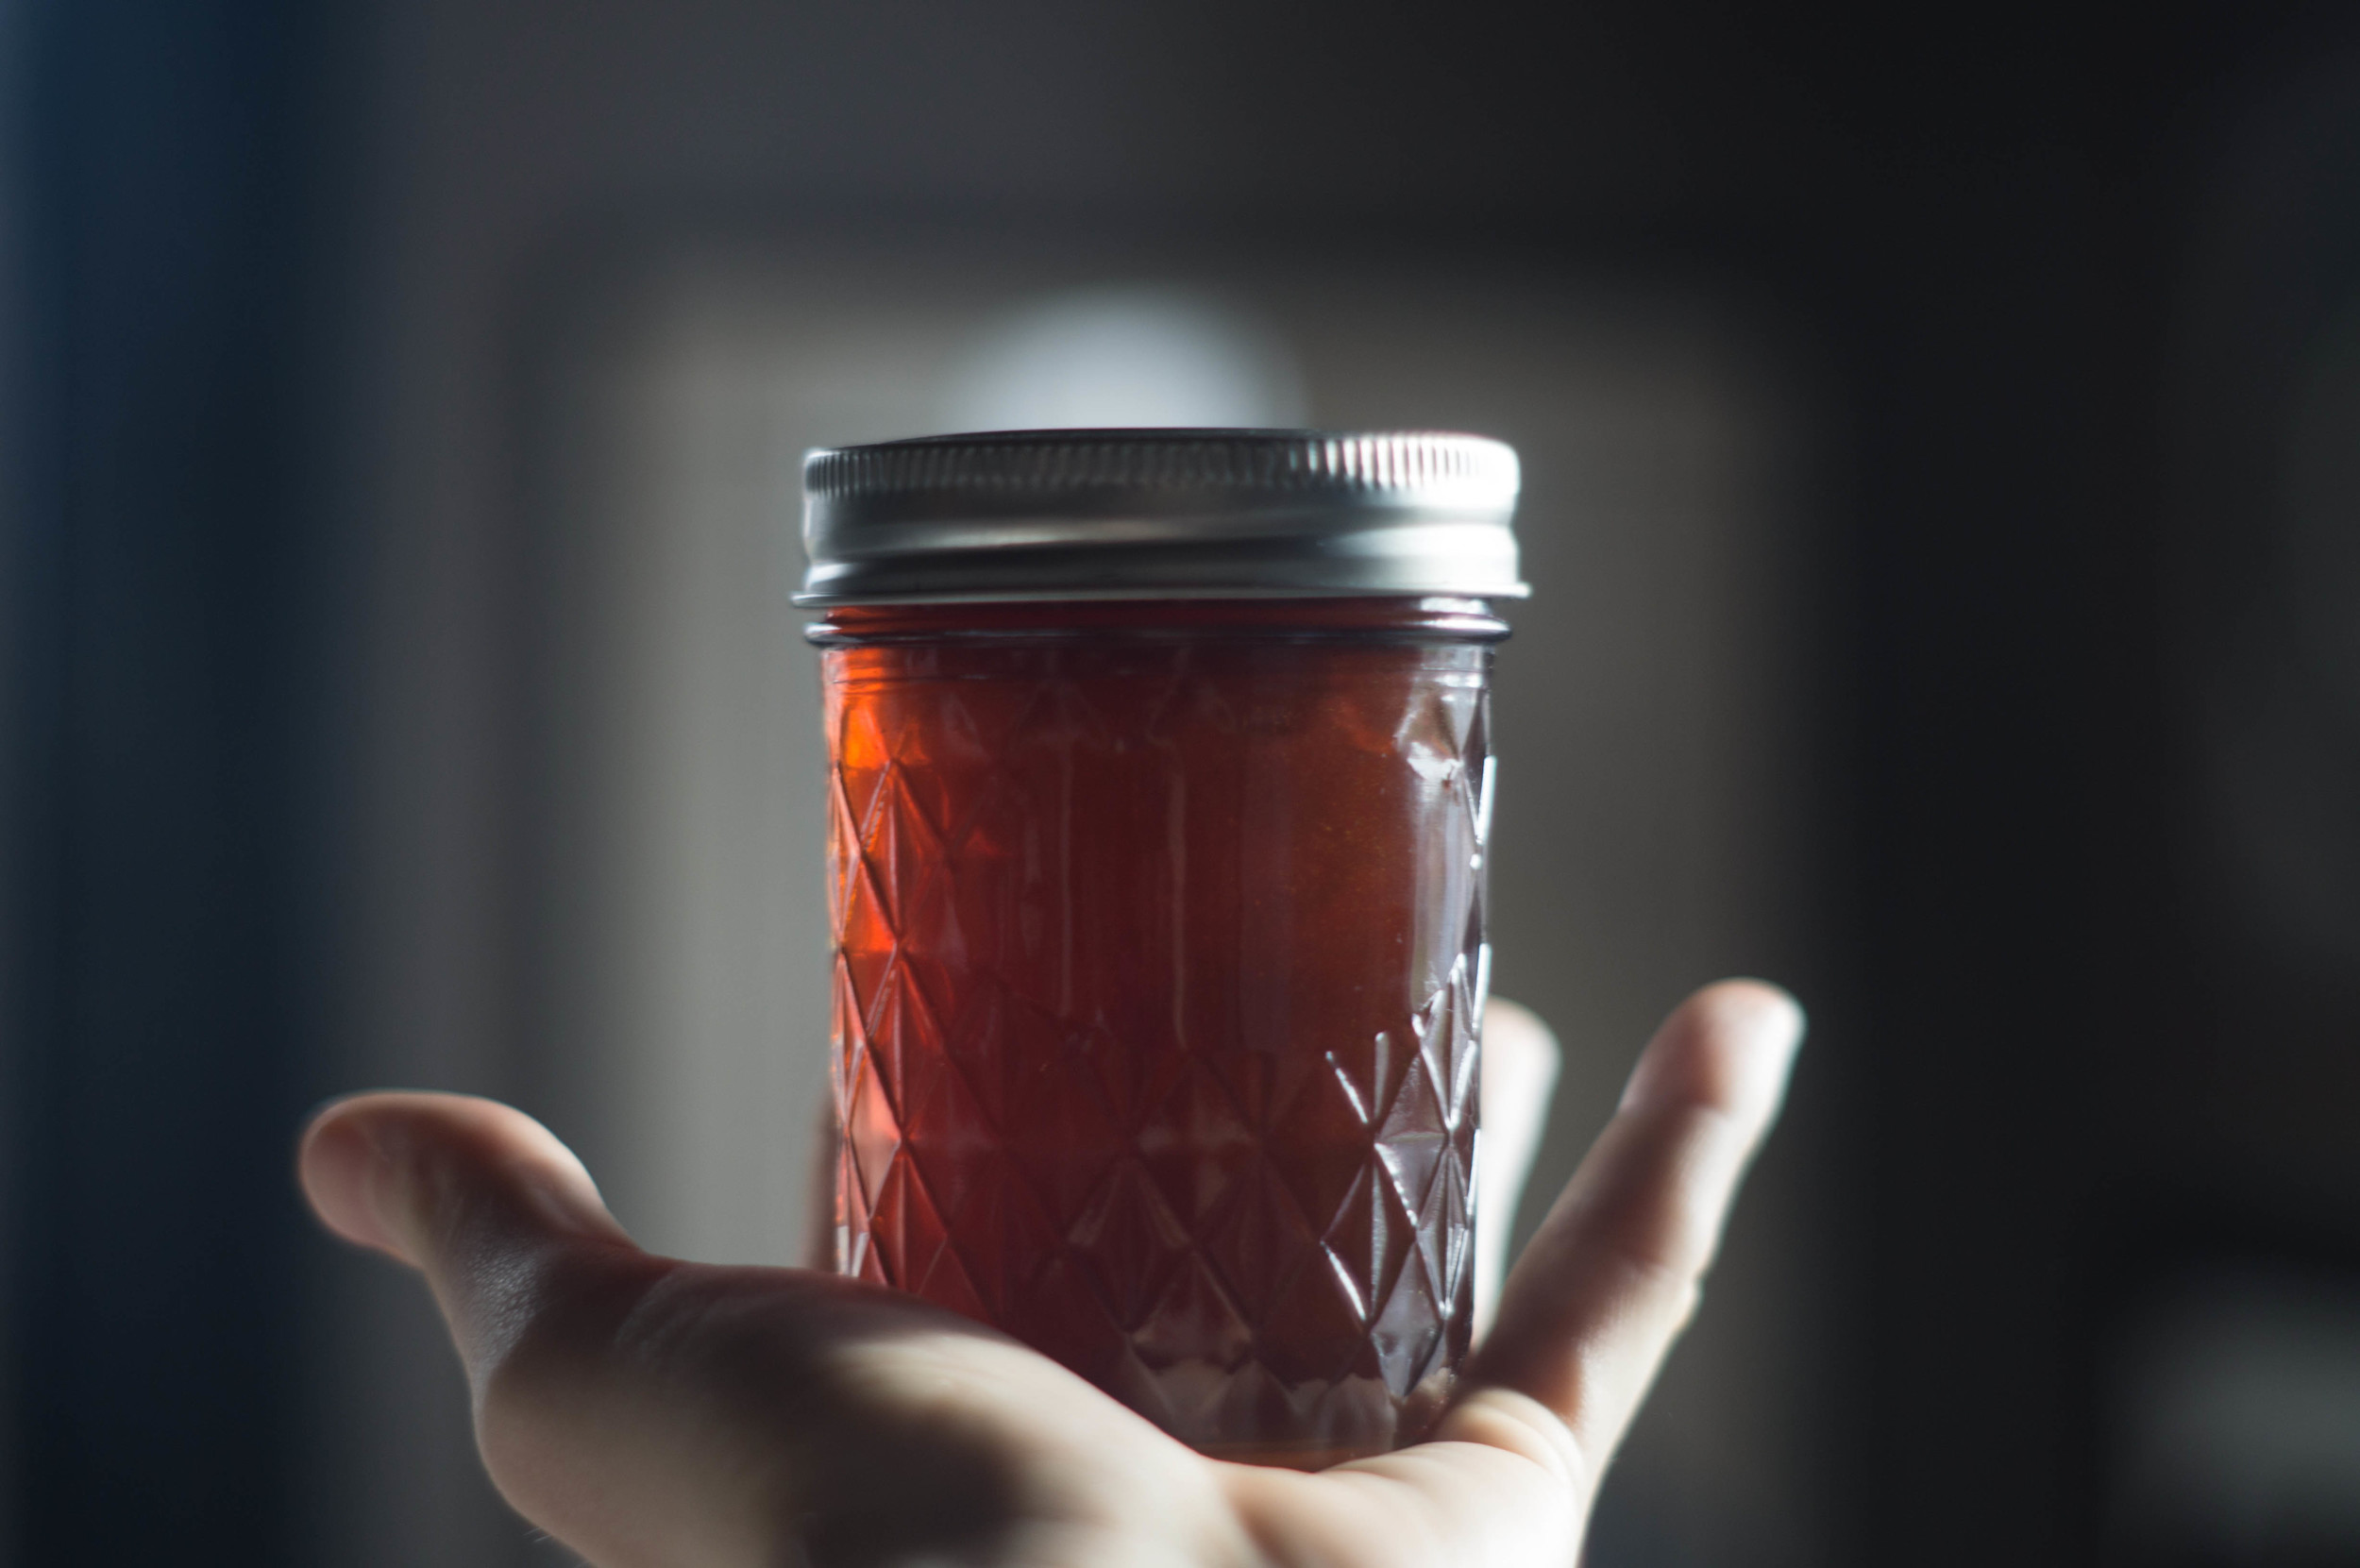 holding-jar-of-honey